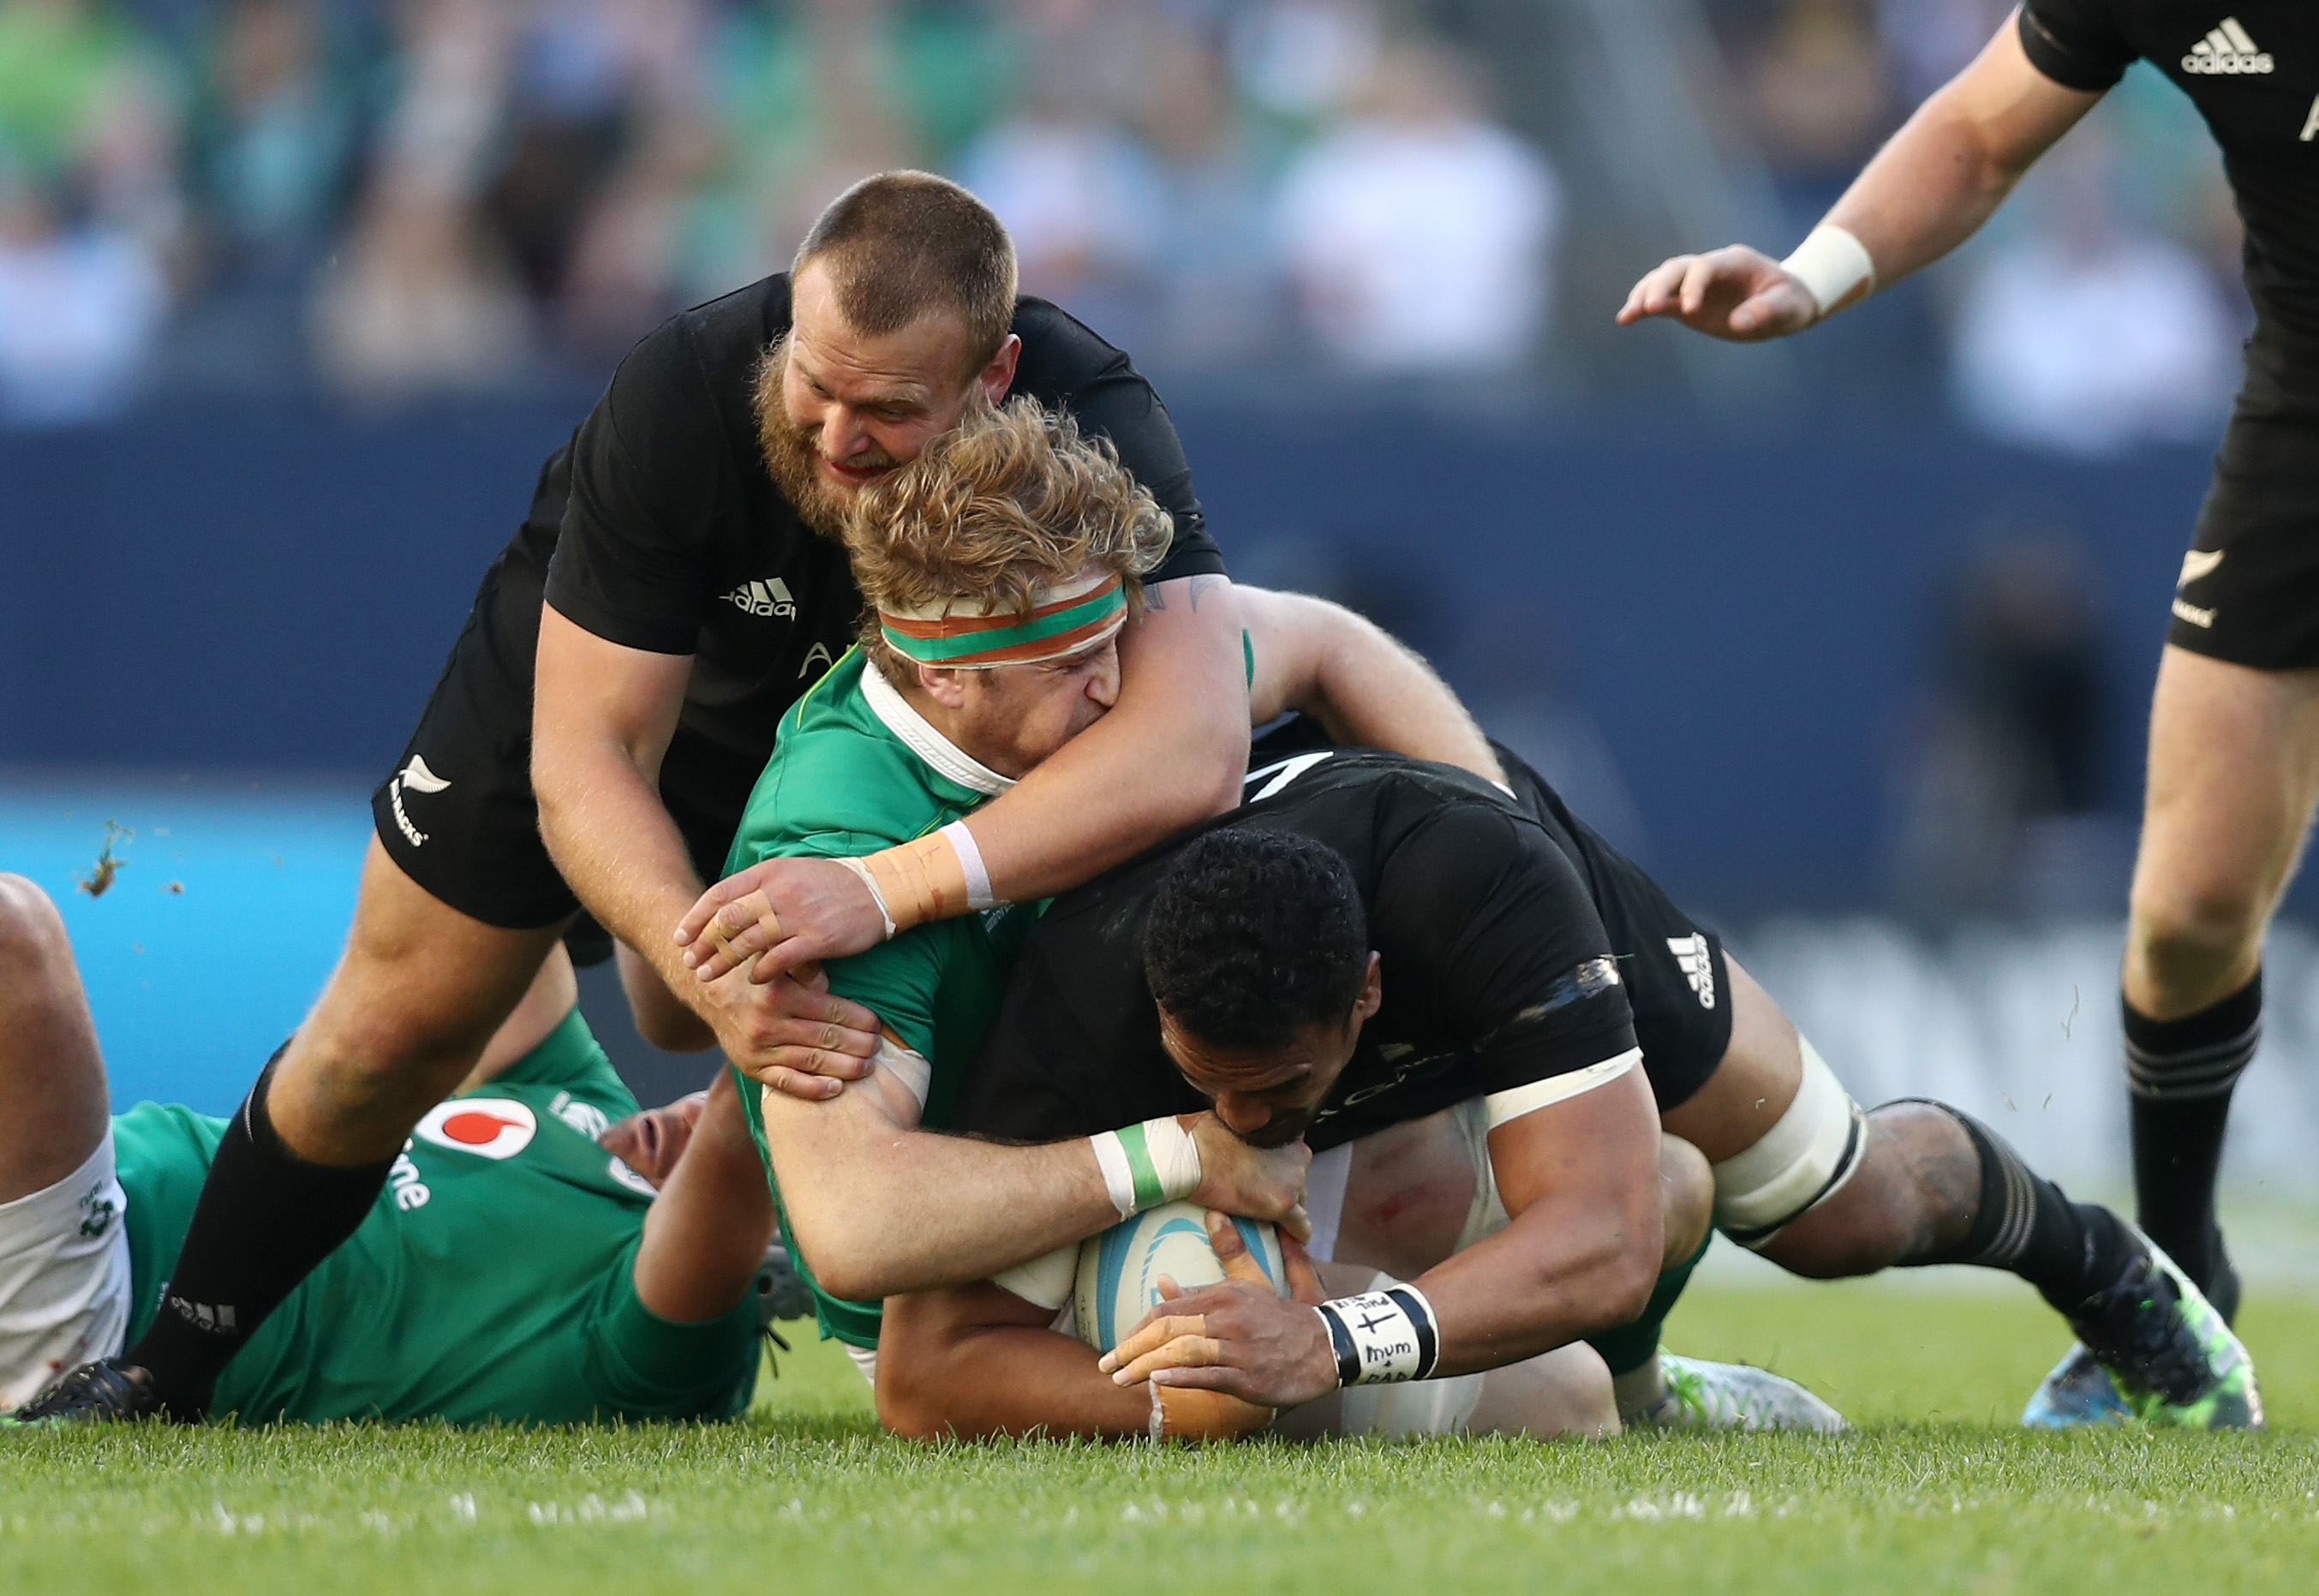 Ireland 40-29 New Zealand hits and misses: Ireland create history as they beat the All Blacks for the very first time